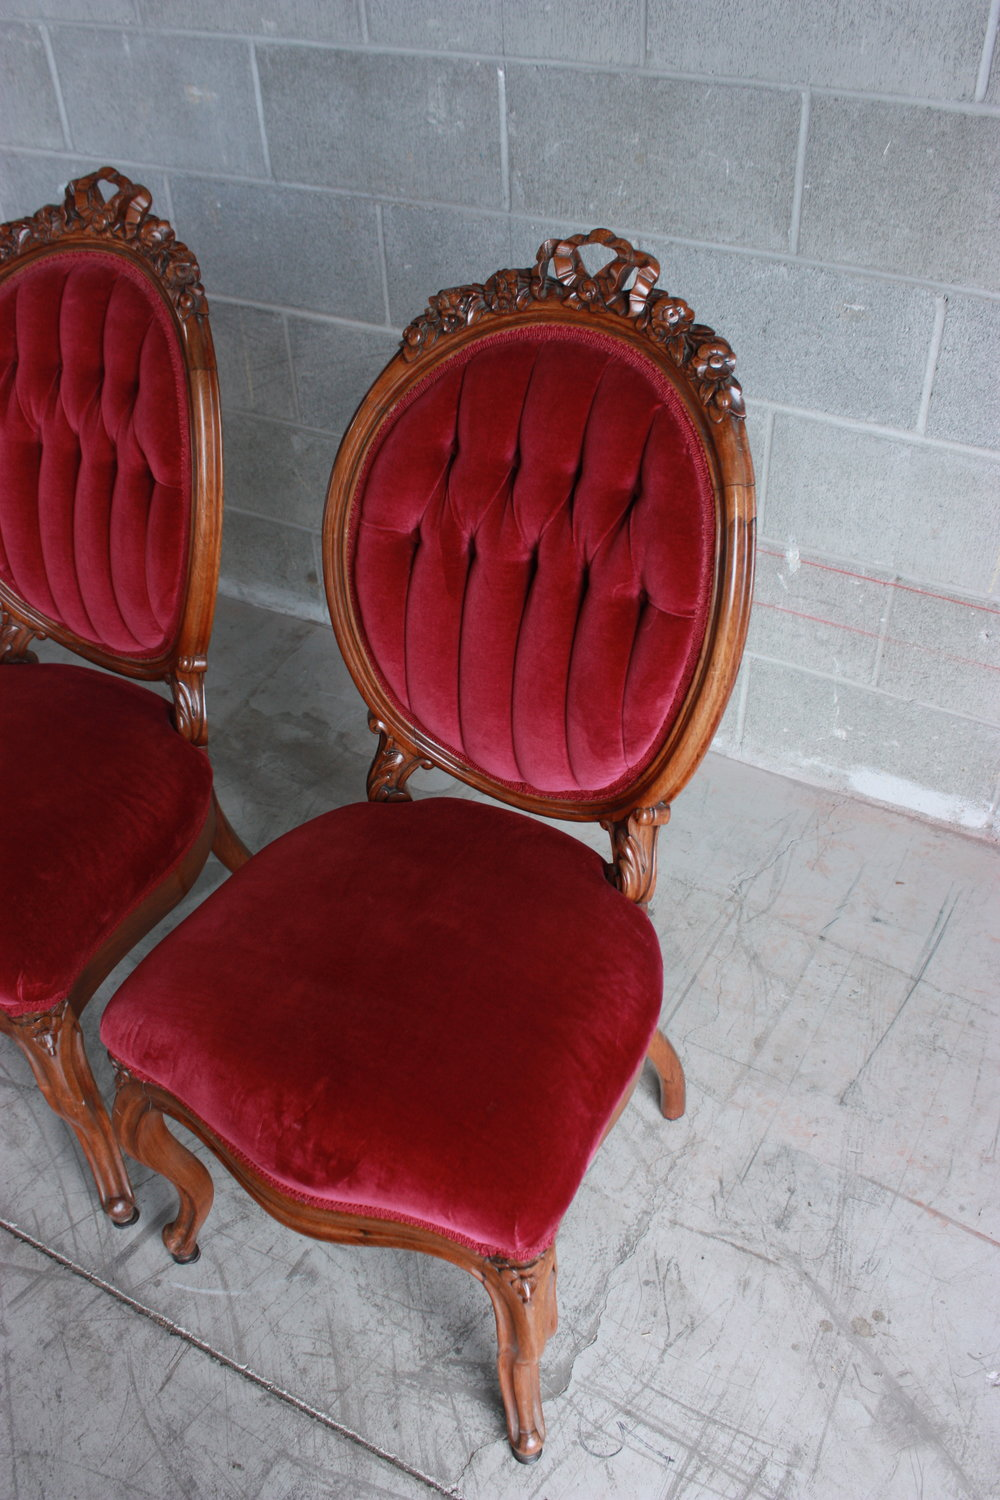 Merlot Dining Chairs